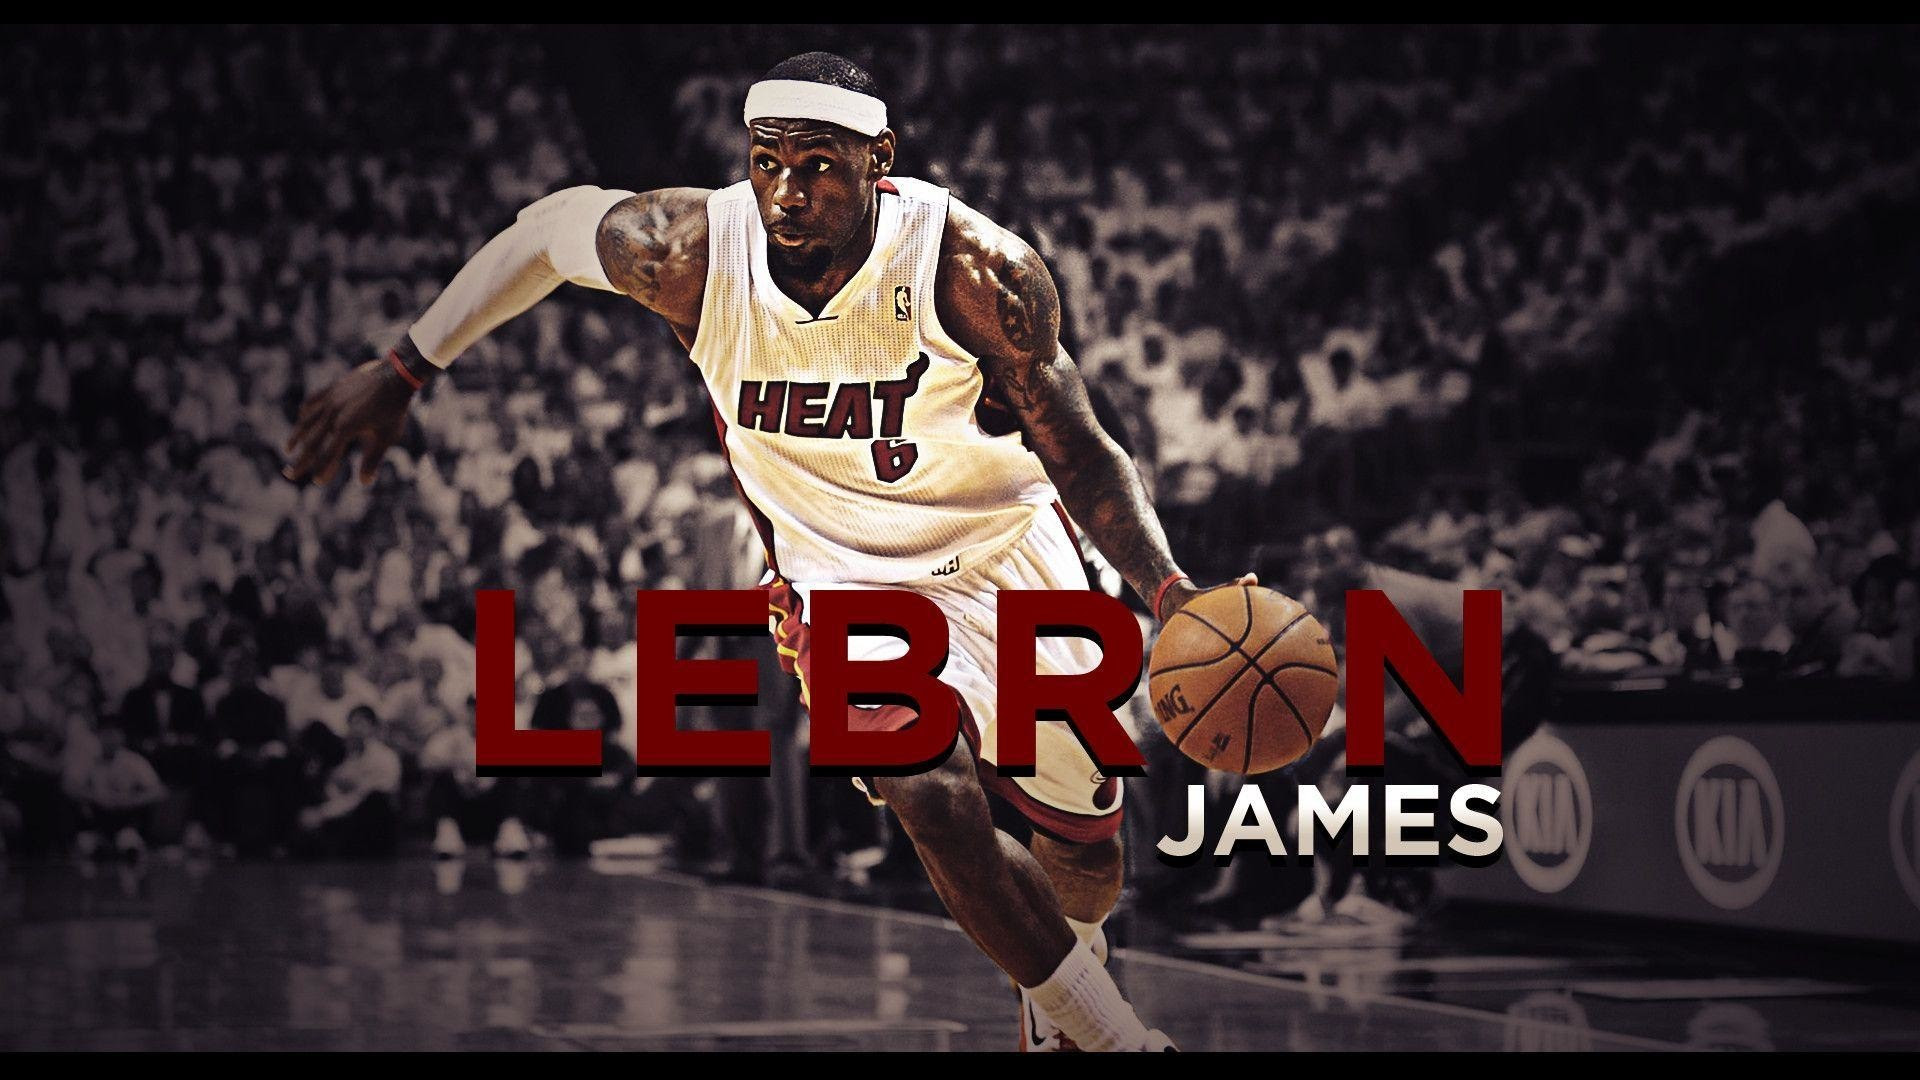 Lebron James Miami Heat Wallpaper 2018 68 Images